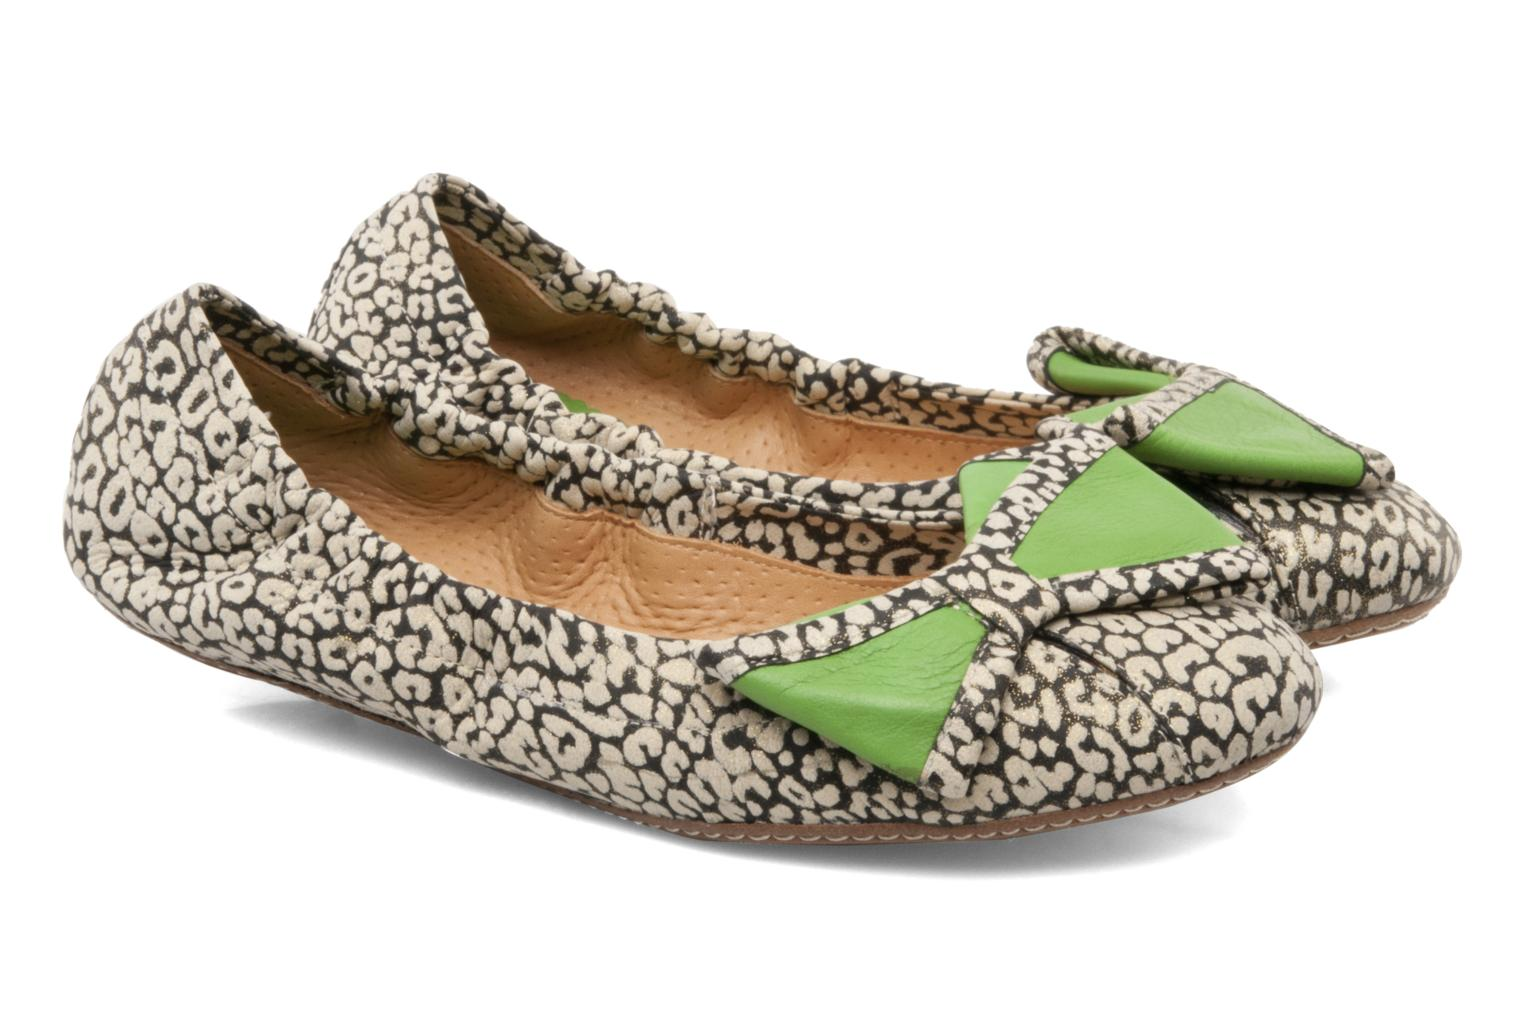 Blanche Leo Pard Black / Leather Grass